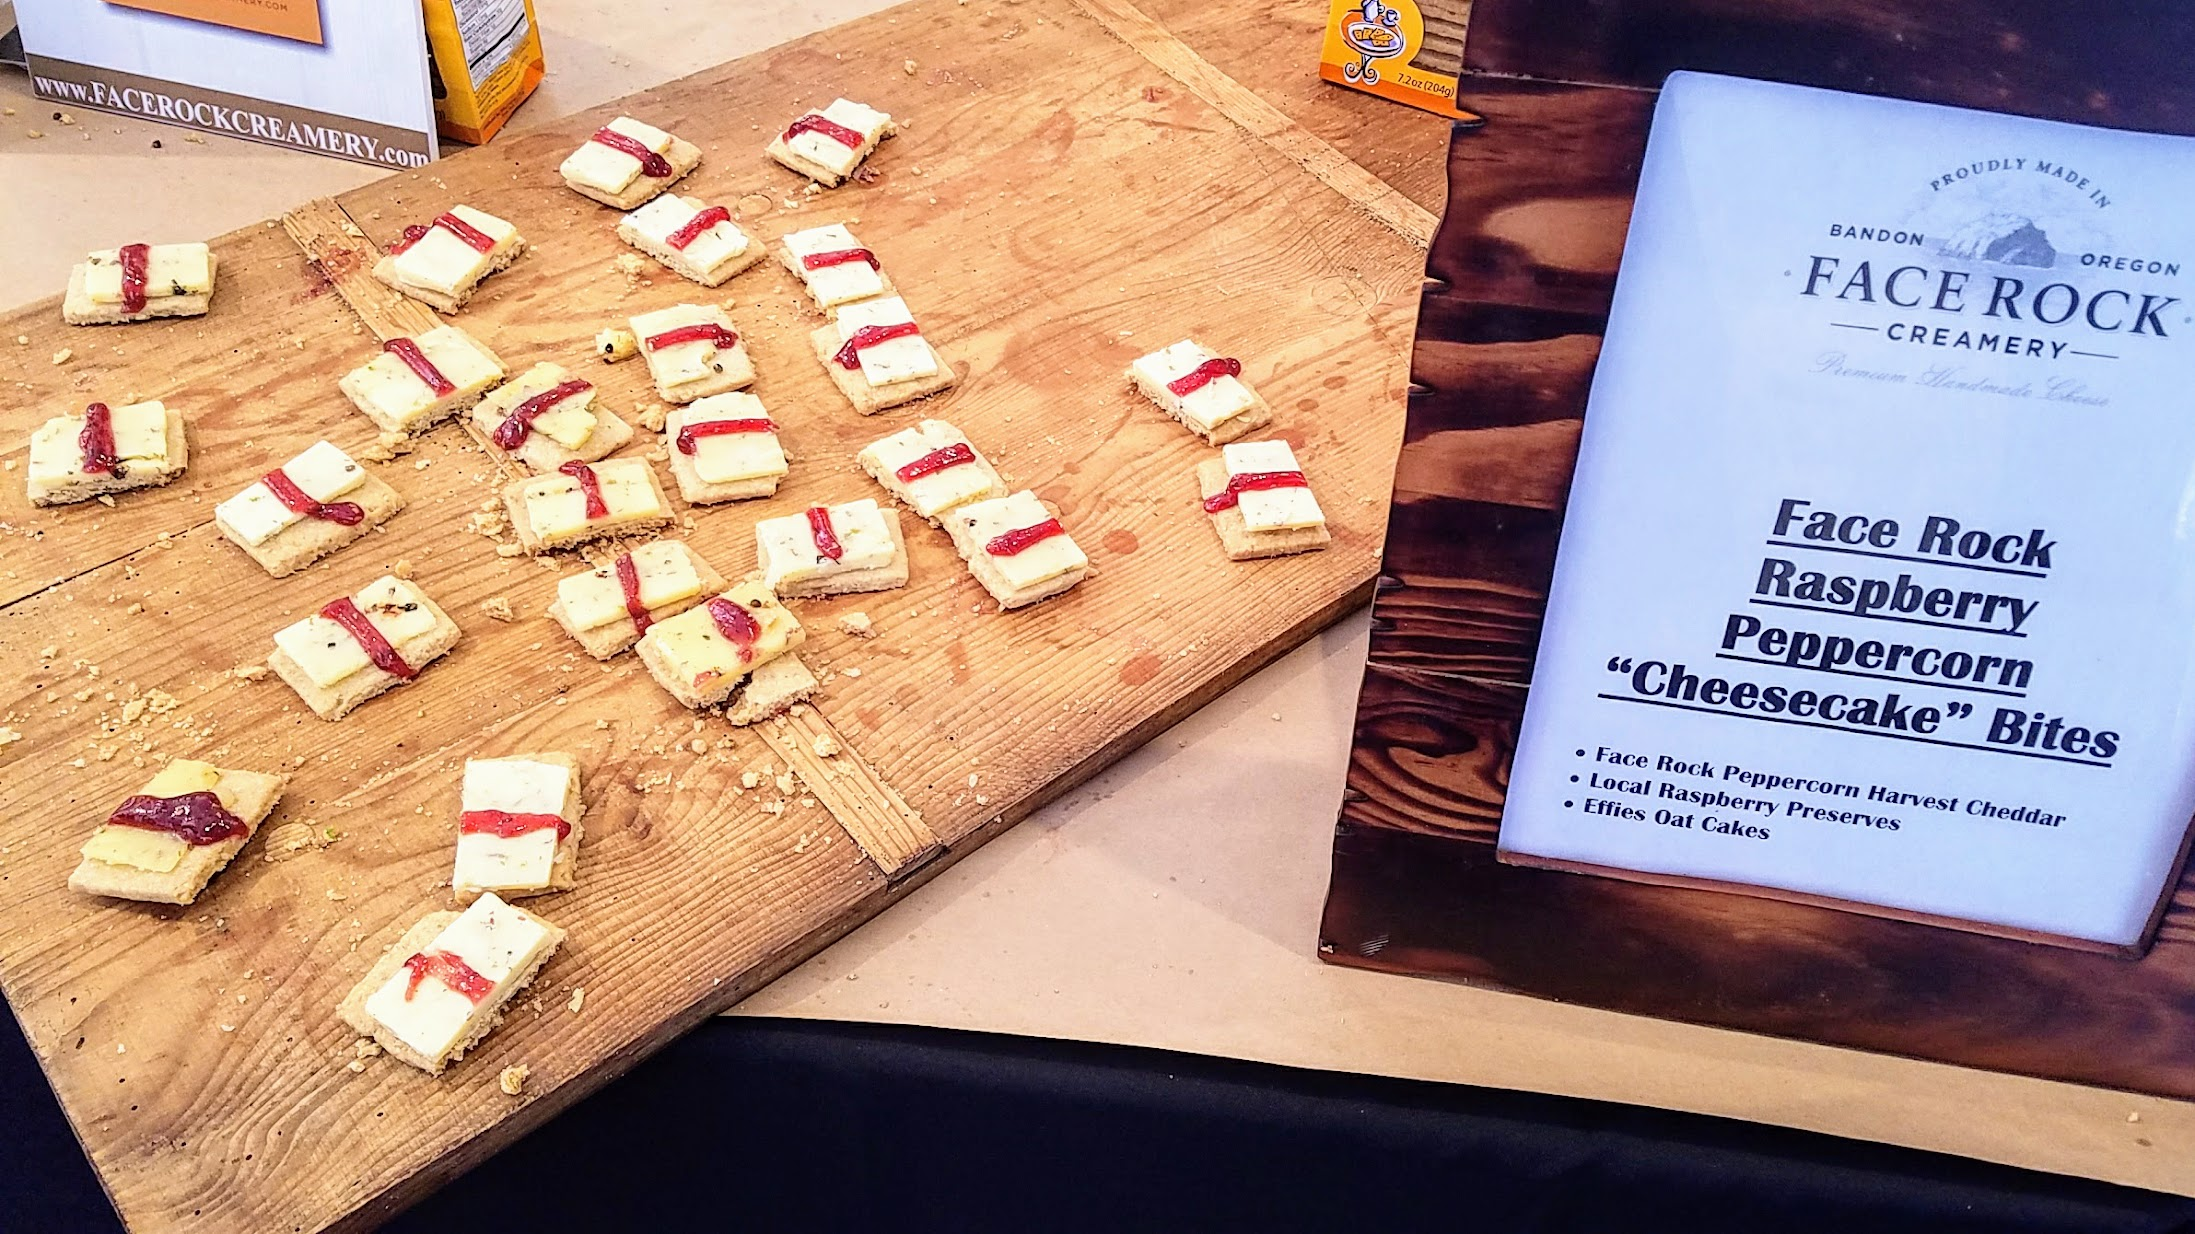 Feast Portland 2016 Grand Tasting, samples from Face Rock Creamery perfect for a party, Face Rock Raspberry Peppercorn 'Cheesecake' Bites with Face Rock Peppercorn Harvest Cheddar, Local Raspberry Preserves, and Effies Oat Cakes